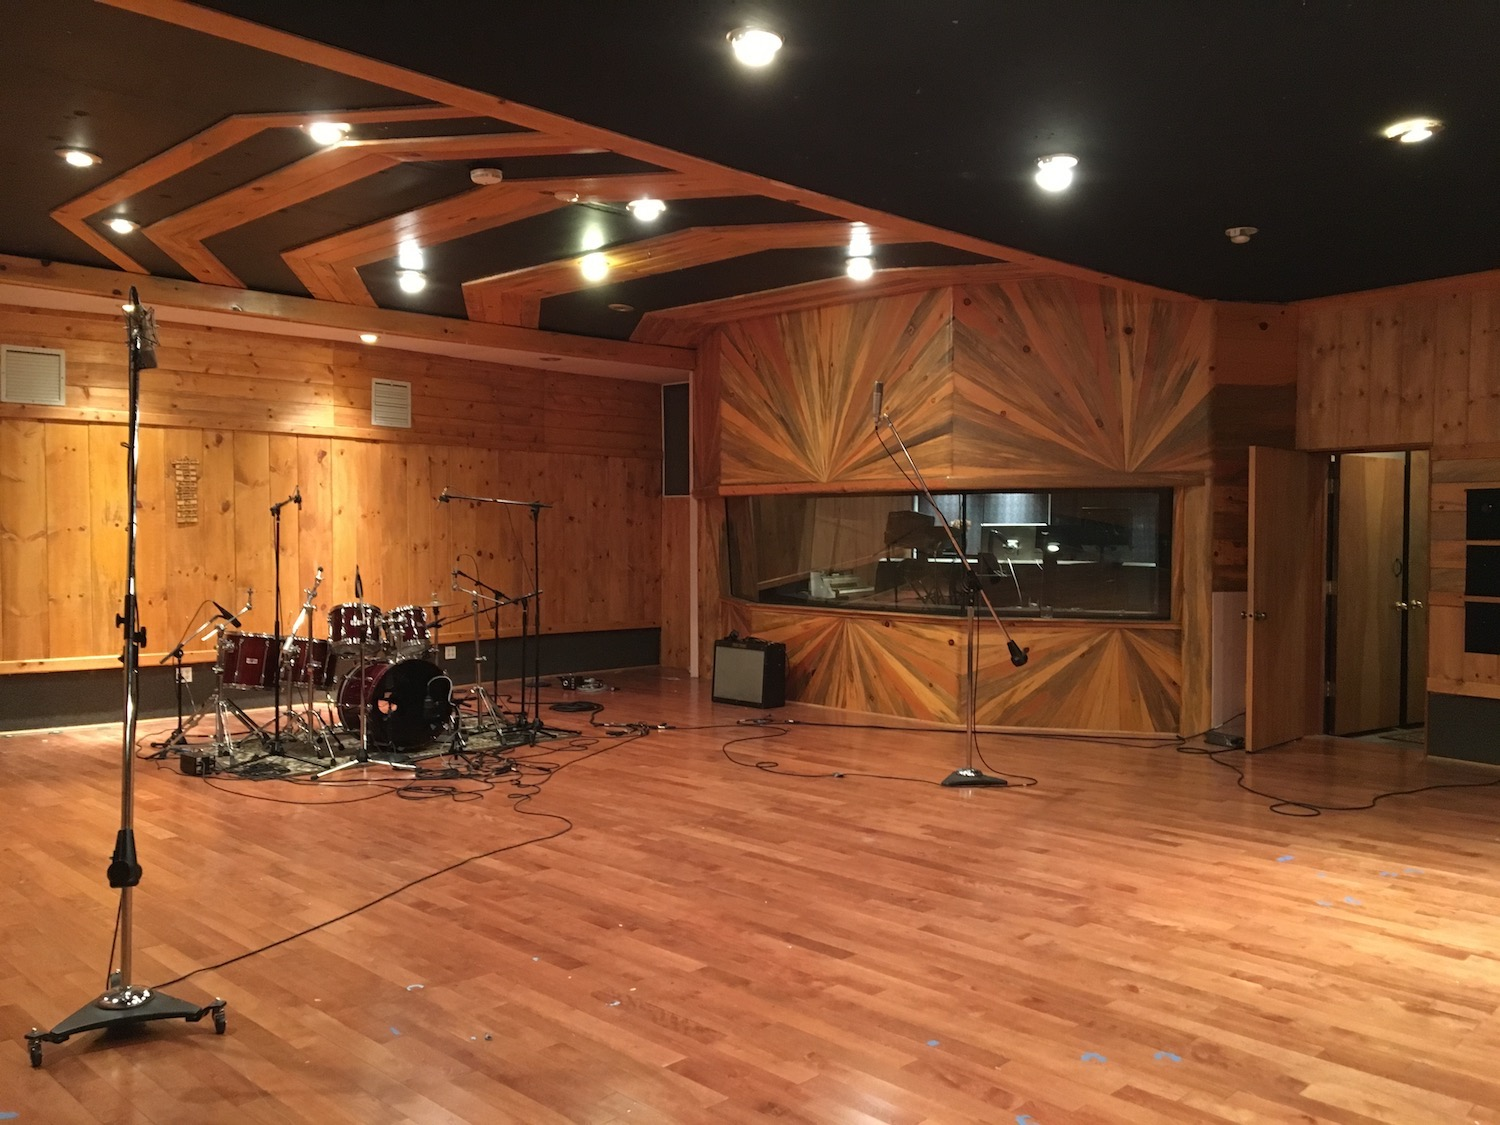 The Memphis Room - The Memphis Room, so called after it was designed and built by Elvis Presley's keyboard player. The large control room is accompanied by a fully wood finished 800 sq ft live room. A rare and luxurious environment in modern recording.